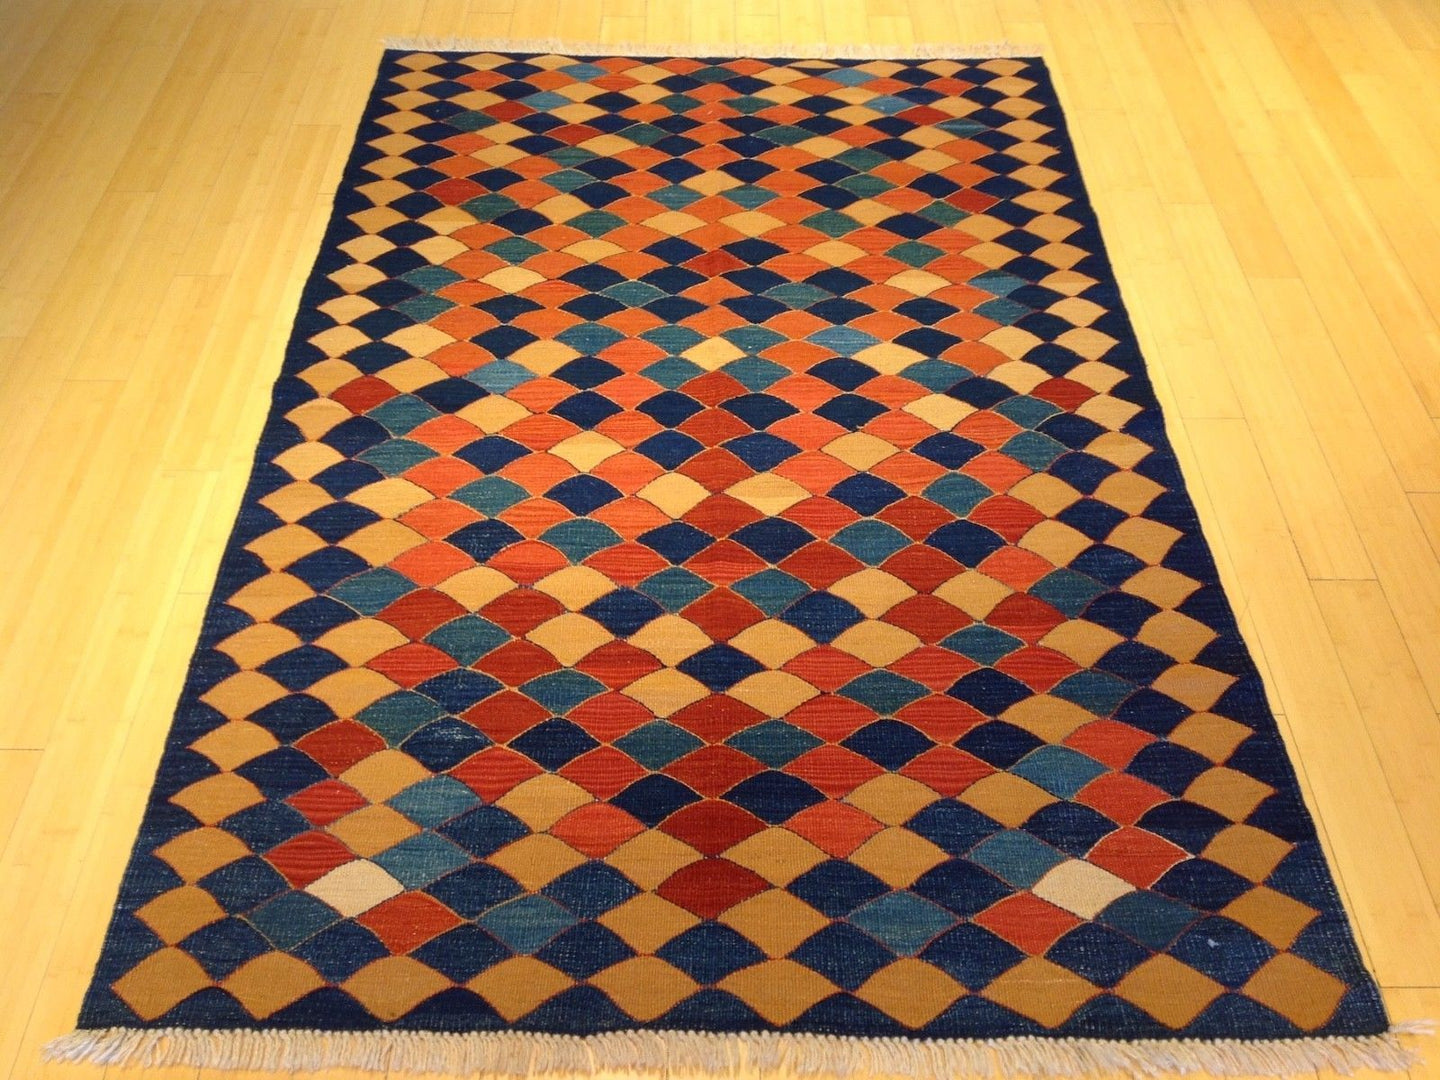 Beautiful Interior-Decorator Oriental Reversible Turkish Kilim Splendid Handwoven Real Wool Unique Rug